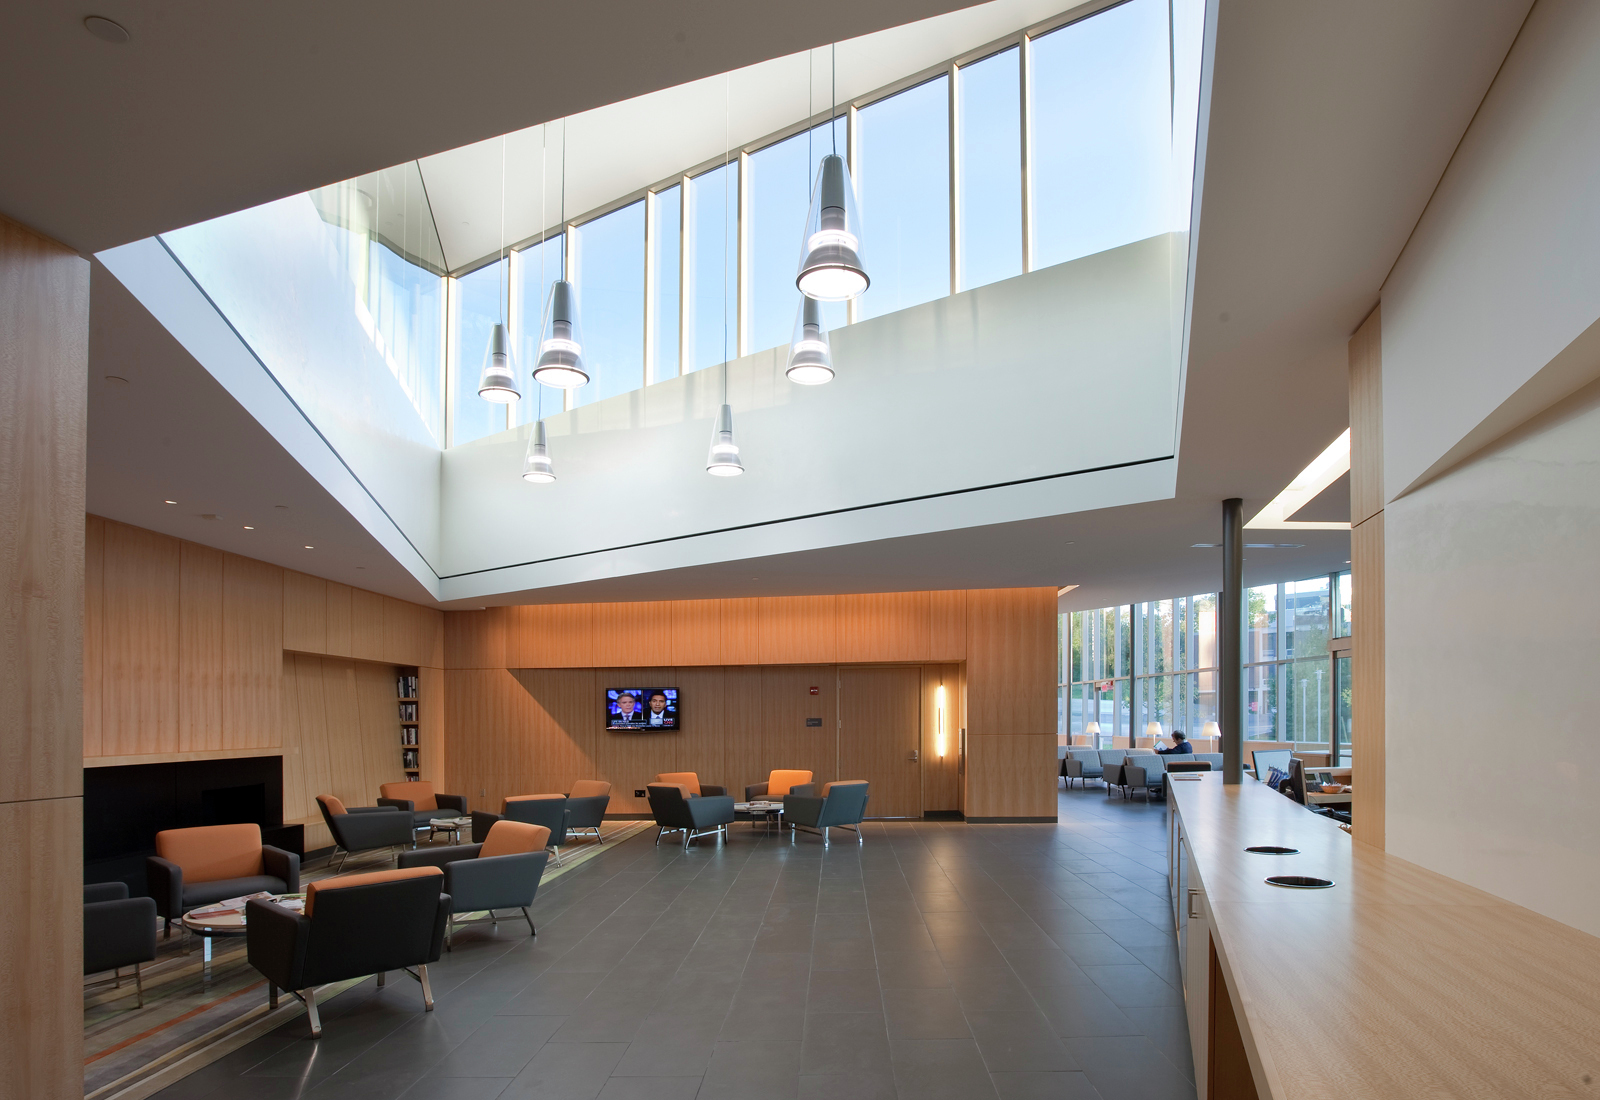 Gallery Of Admissions Center Brandeis University